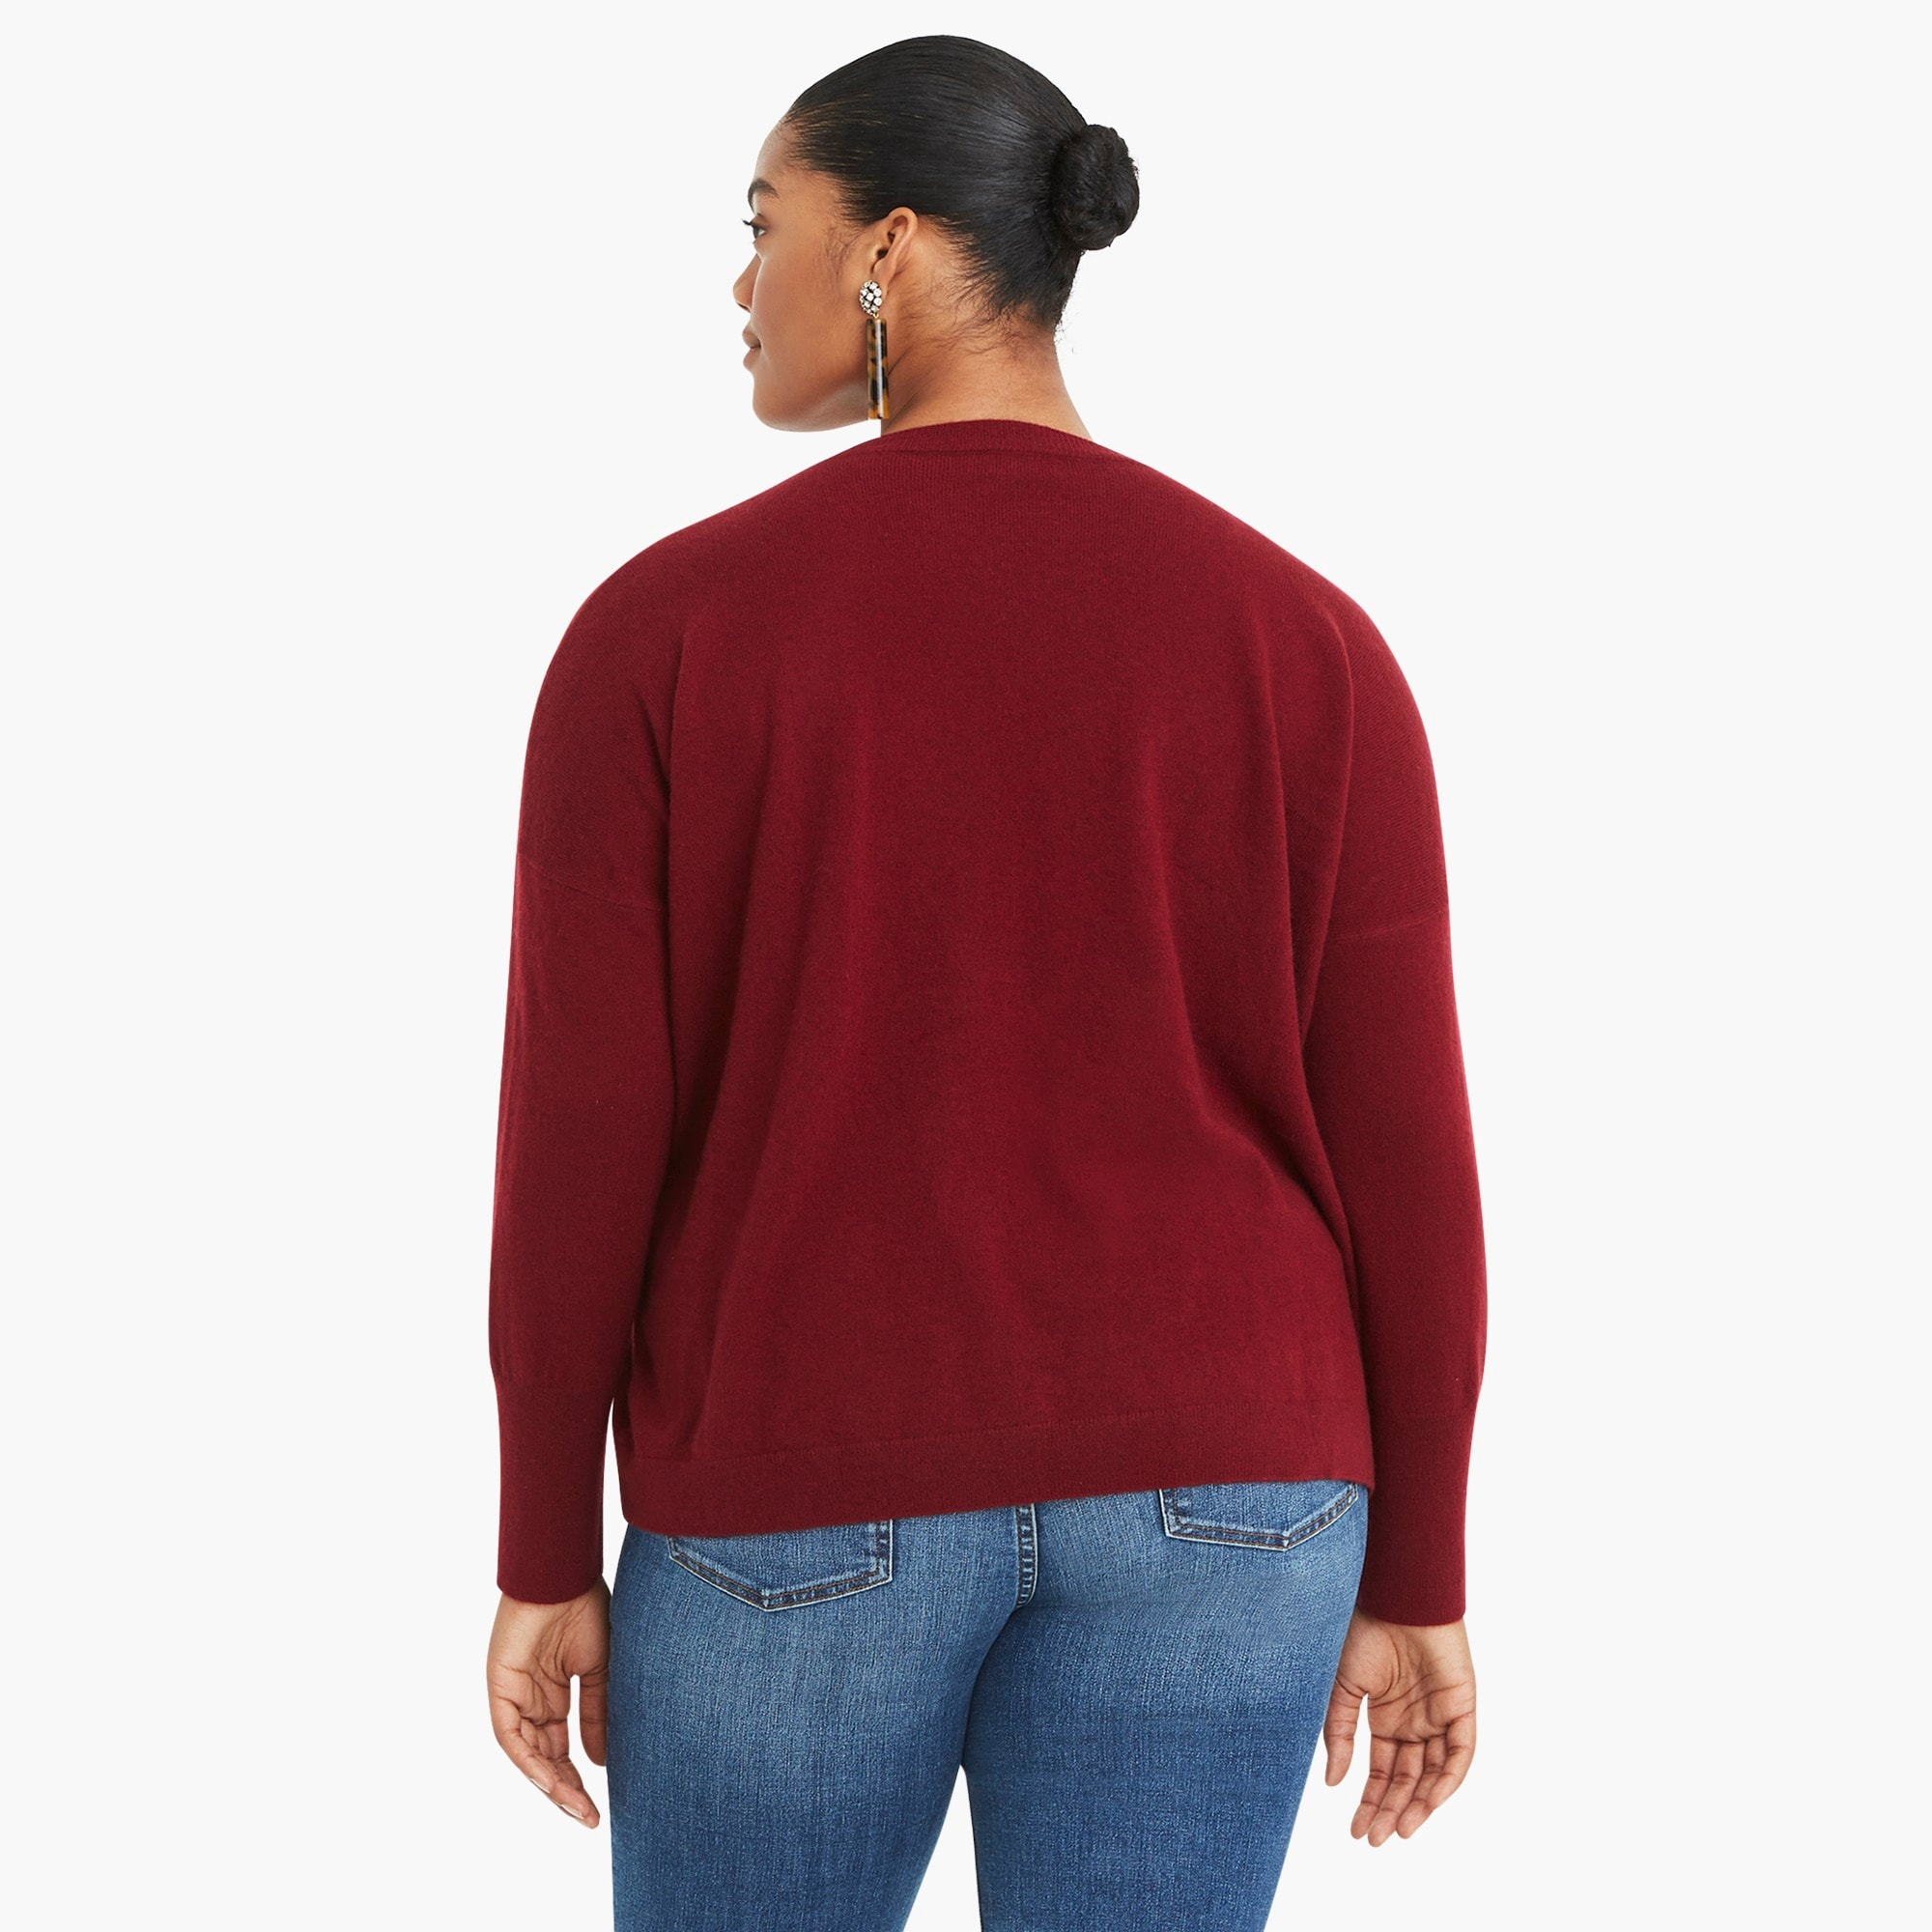 Image 5 for V-neck Boyfriend sweater in everyday cashmere